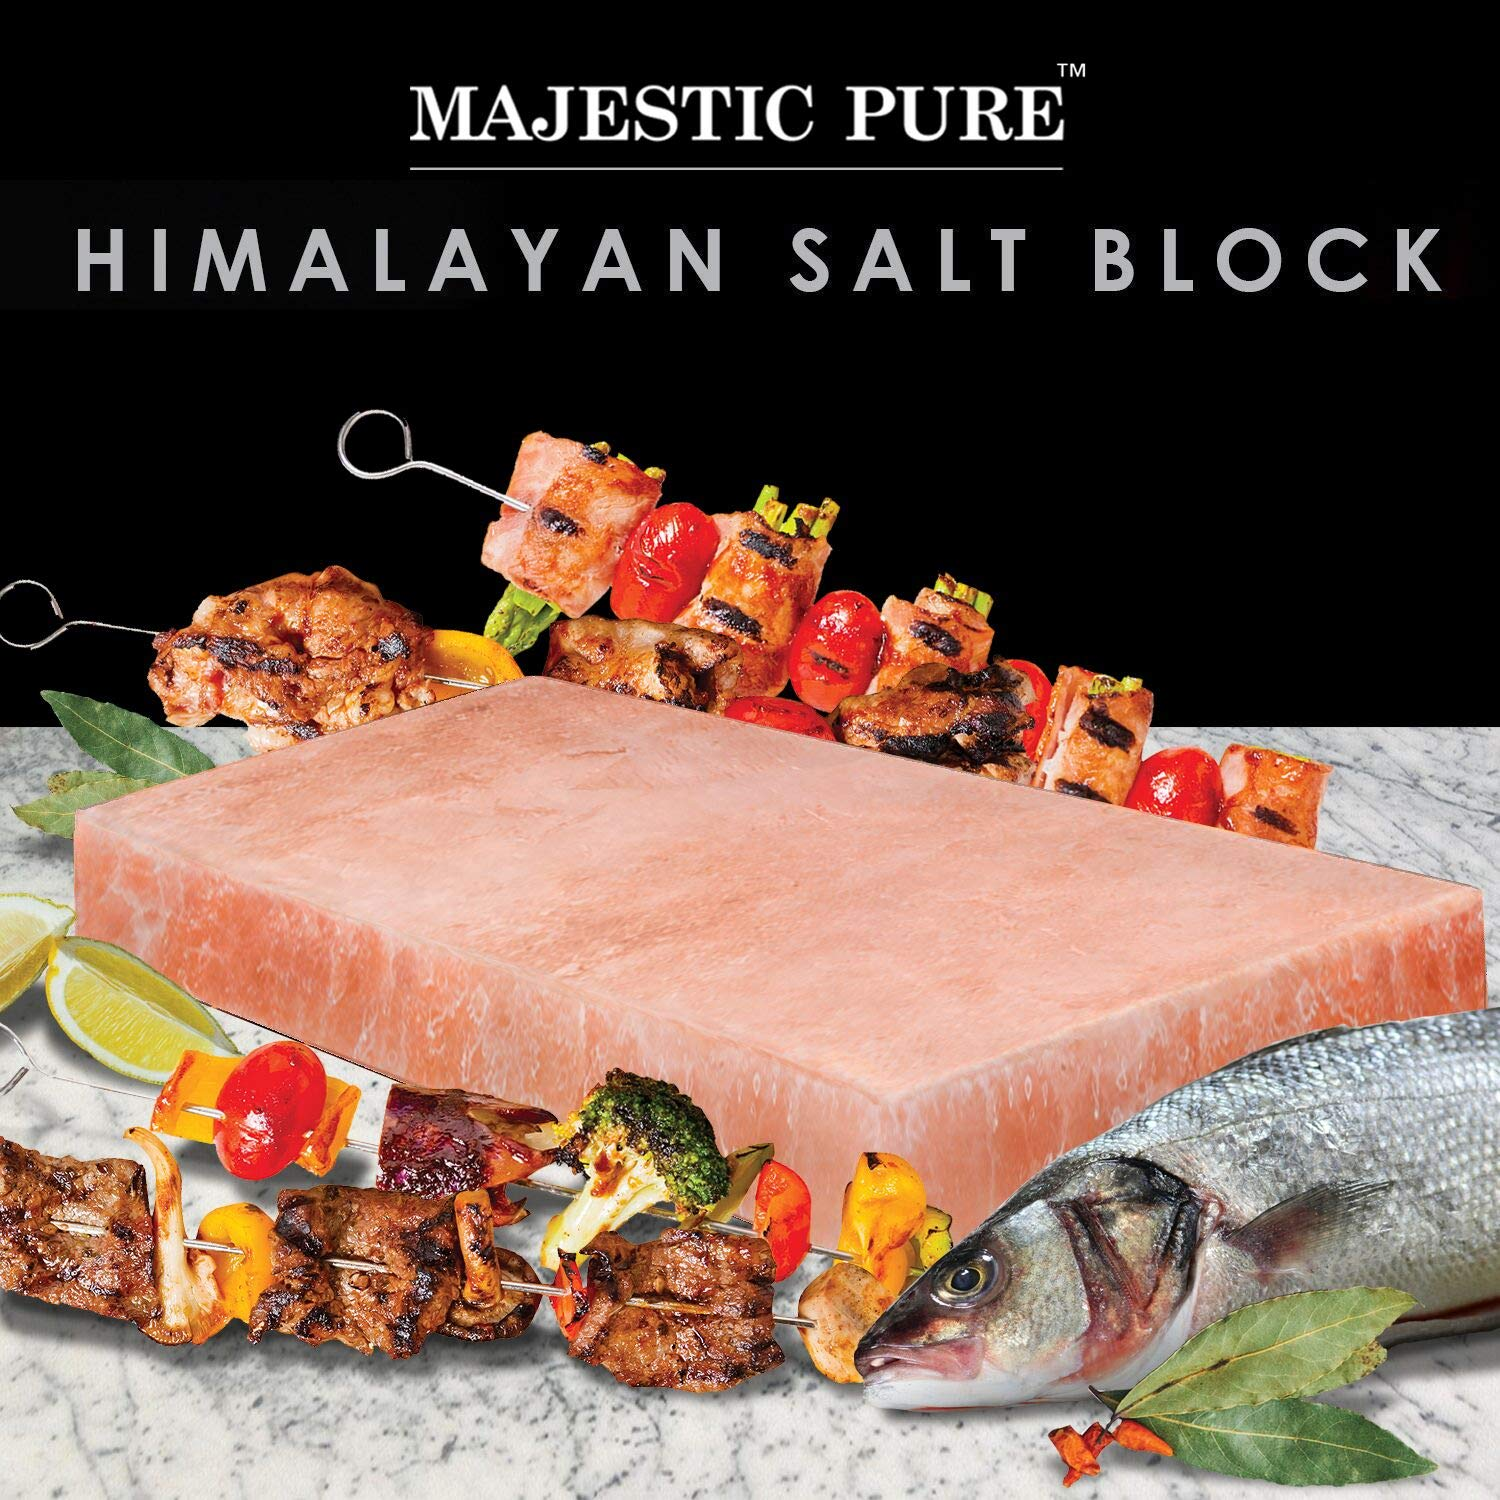 Majestic Pure Pink Himalayan Salt Block - with Stainless Steel Holder - 12in x 8in x 1.5in by Majestic Pure (Image #2)